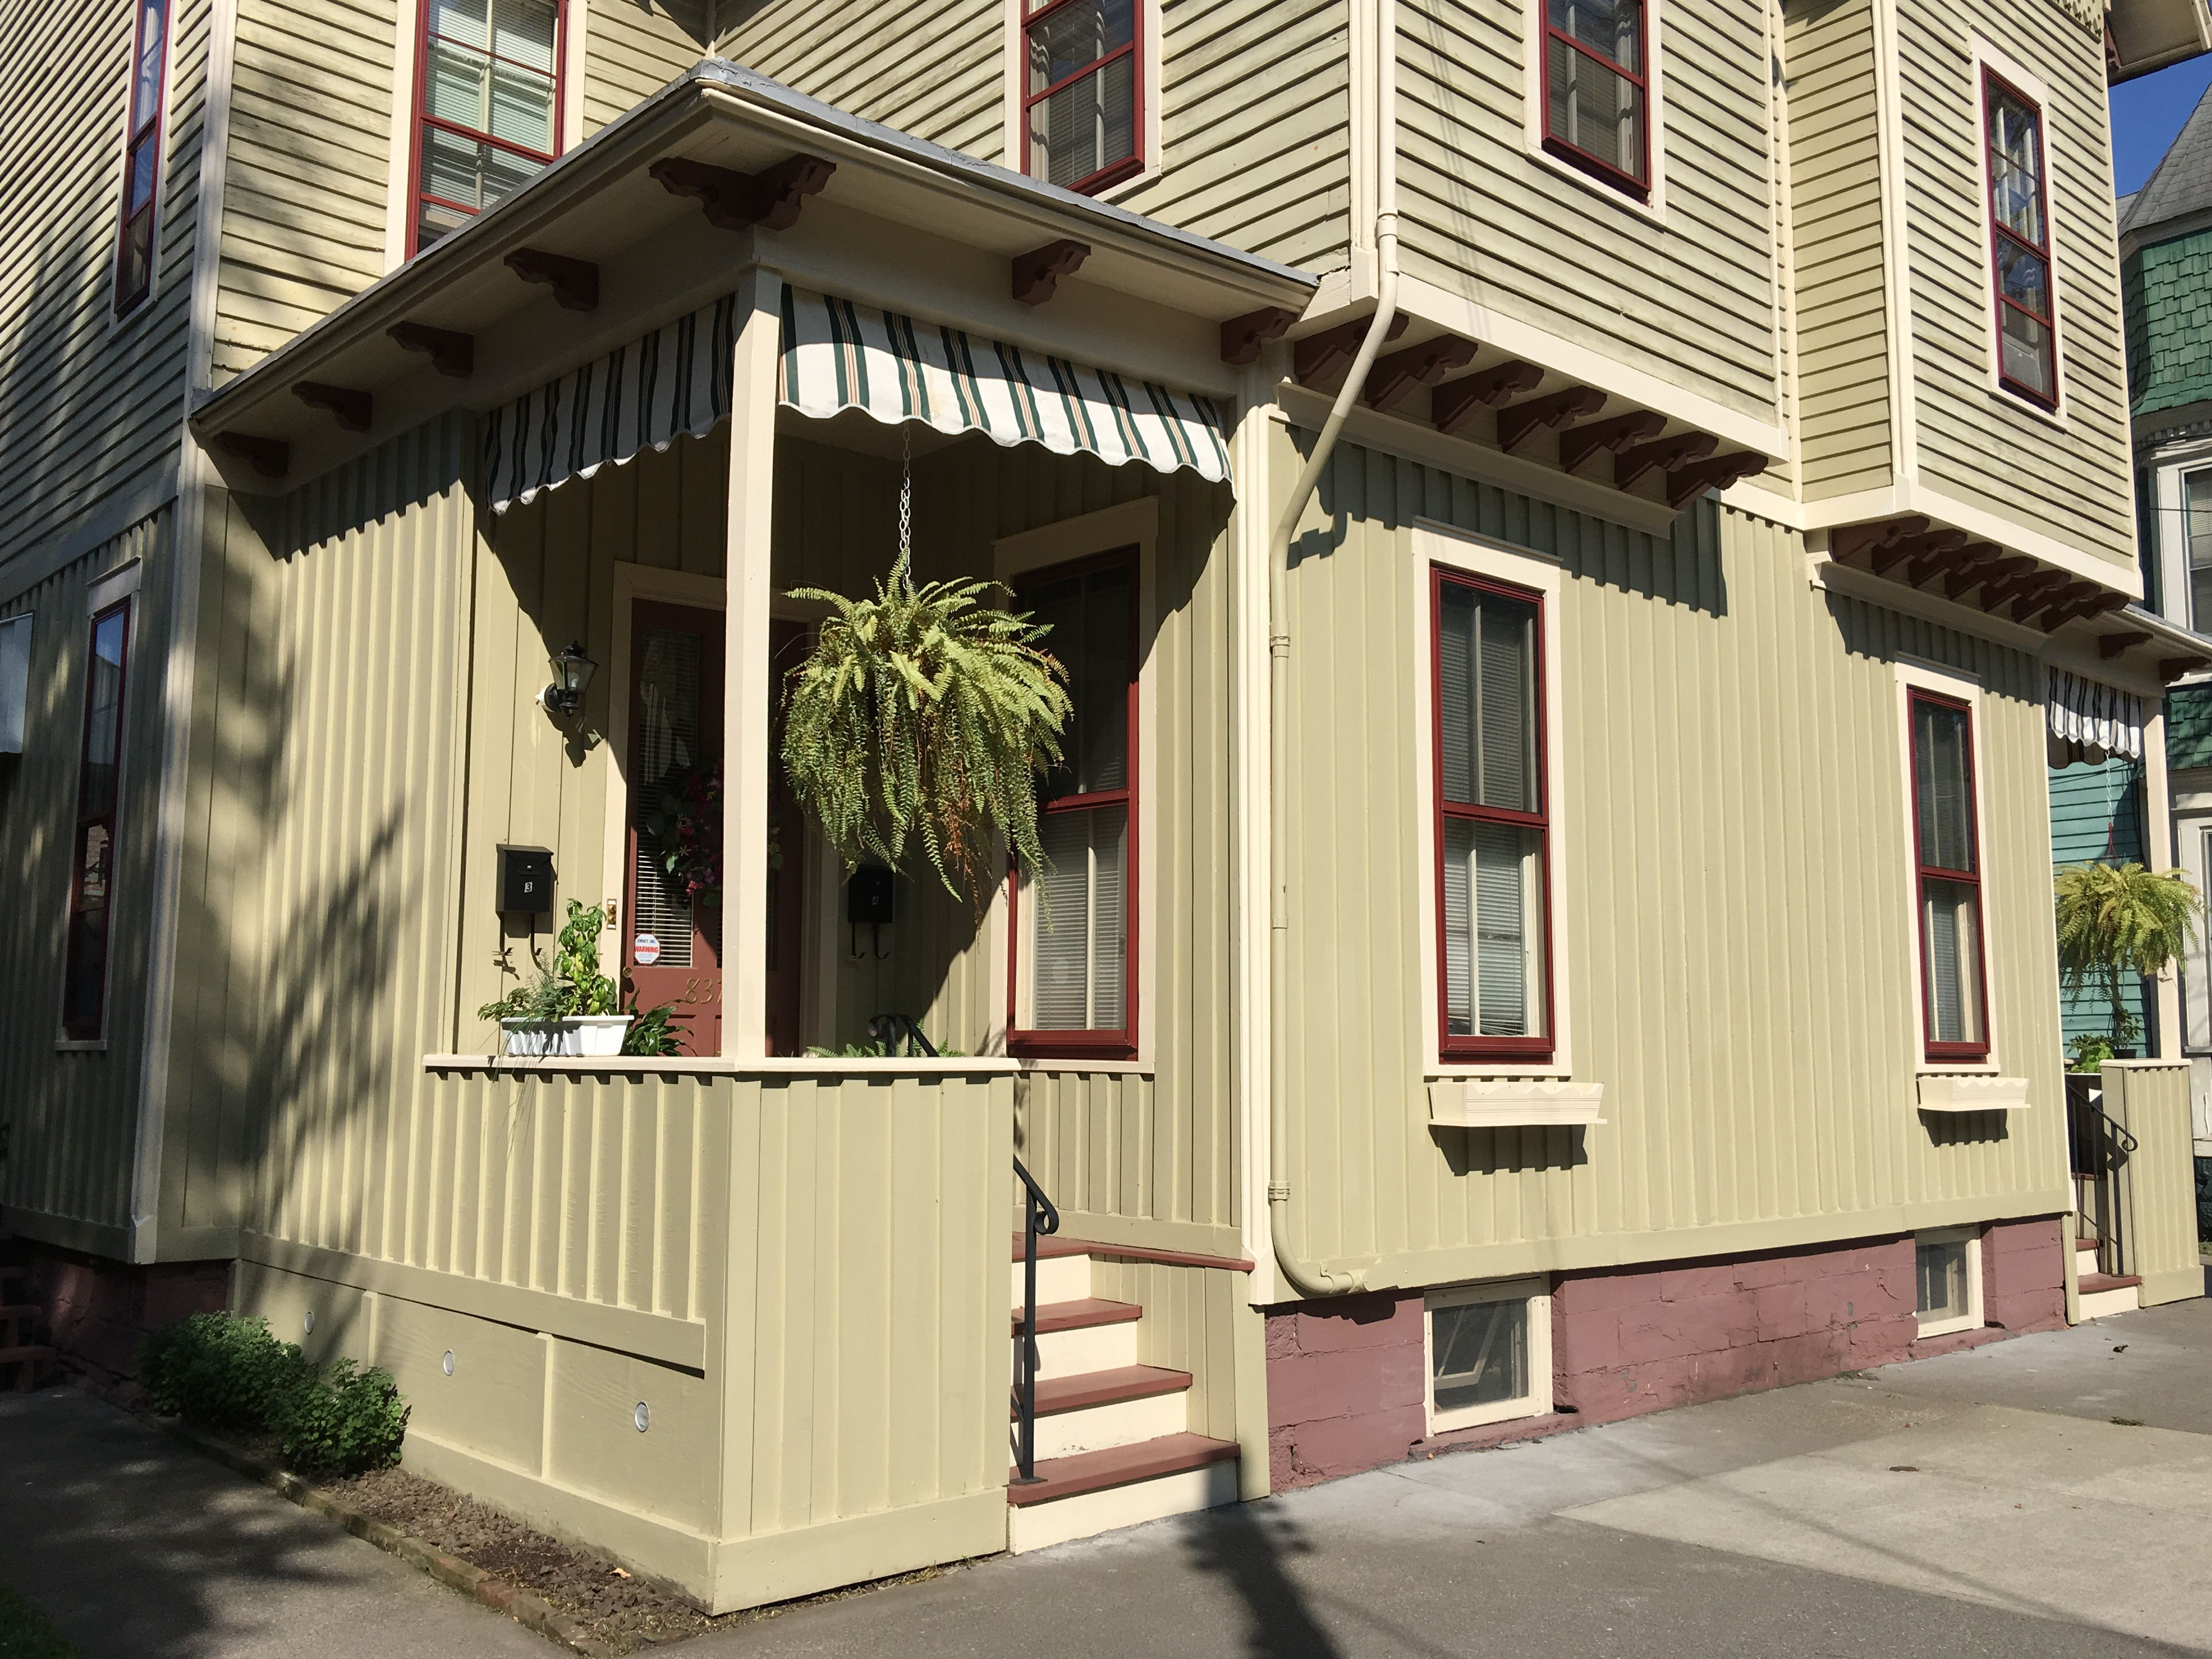 Fashionable It Was During Victorian Era As A Pragmatic Method Batten Everything You Need To Know Addingarchitectural Detail To Carpenter Gothic Board houzz-02 Board And Batten Exterior